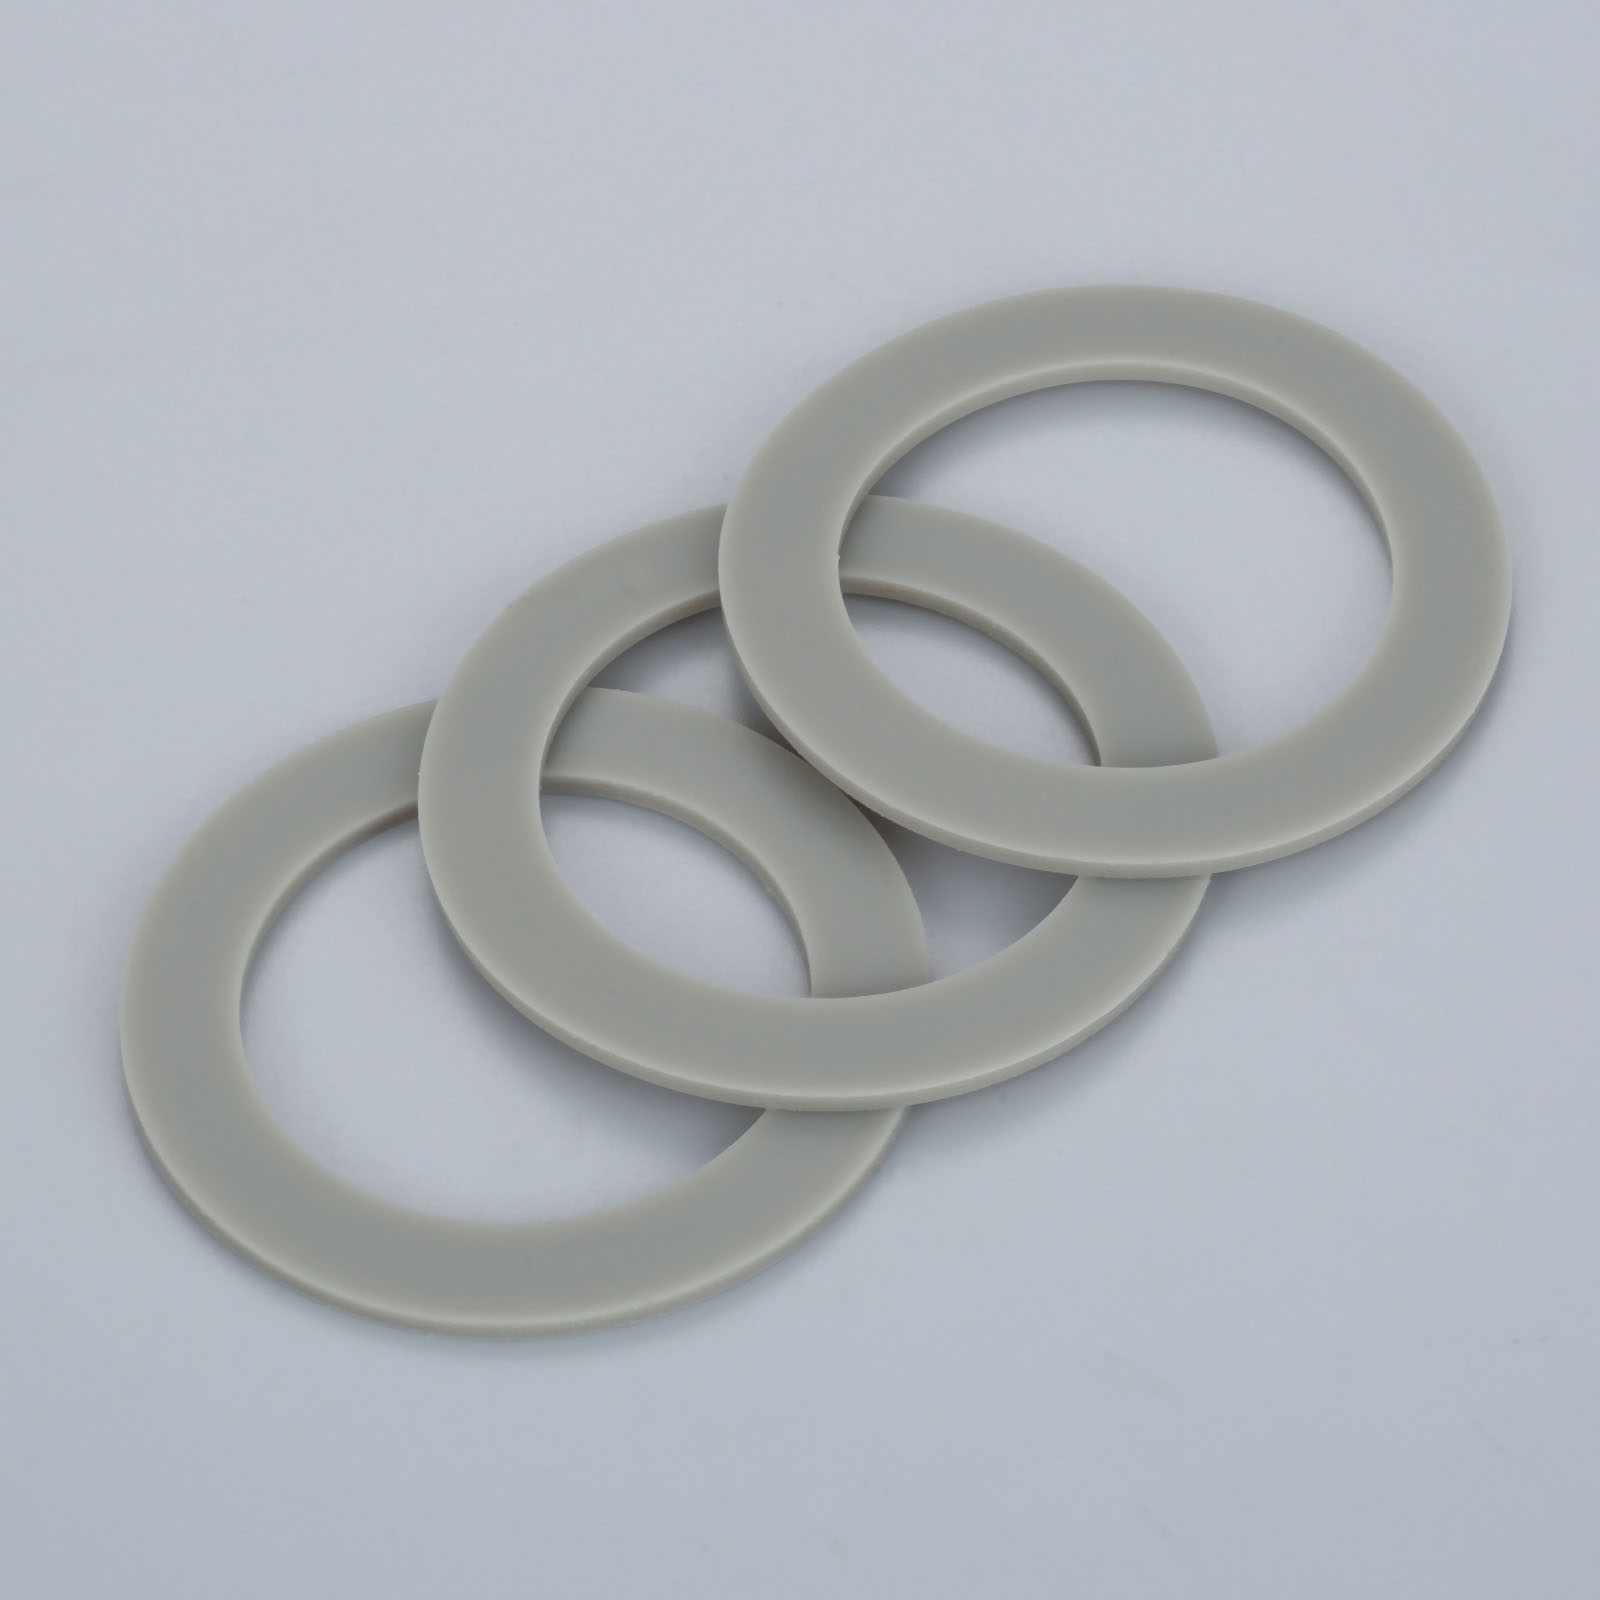 3Pcs Replacement Blender Sealing Gasket O-ring Fit For Cuisinart Blender 65mm CUCB-456-3